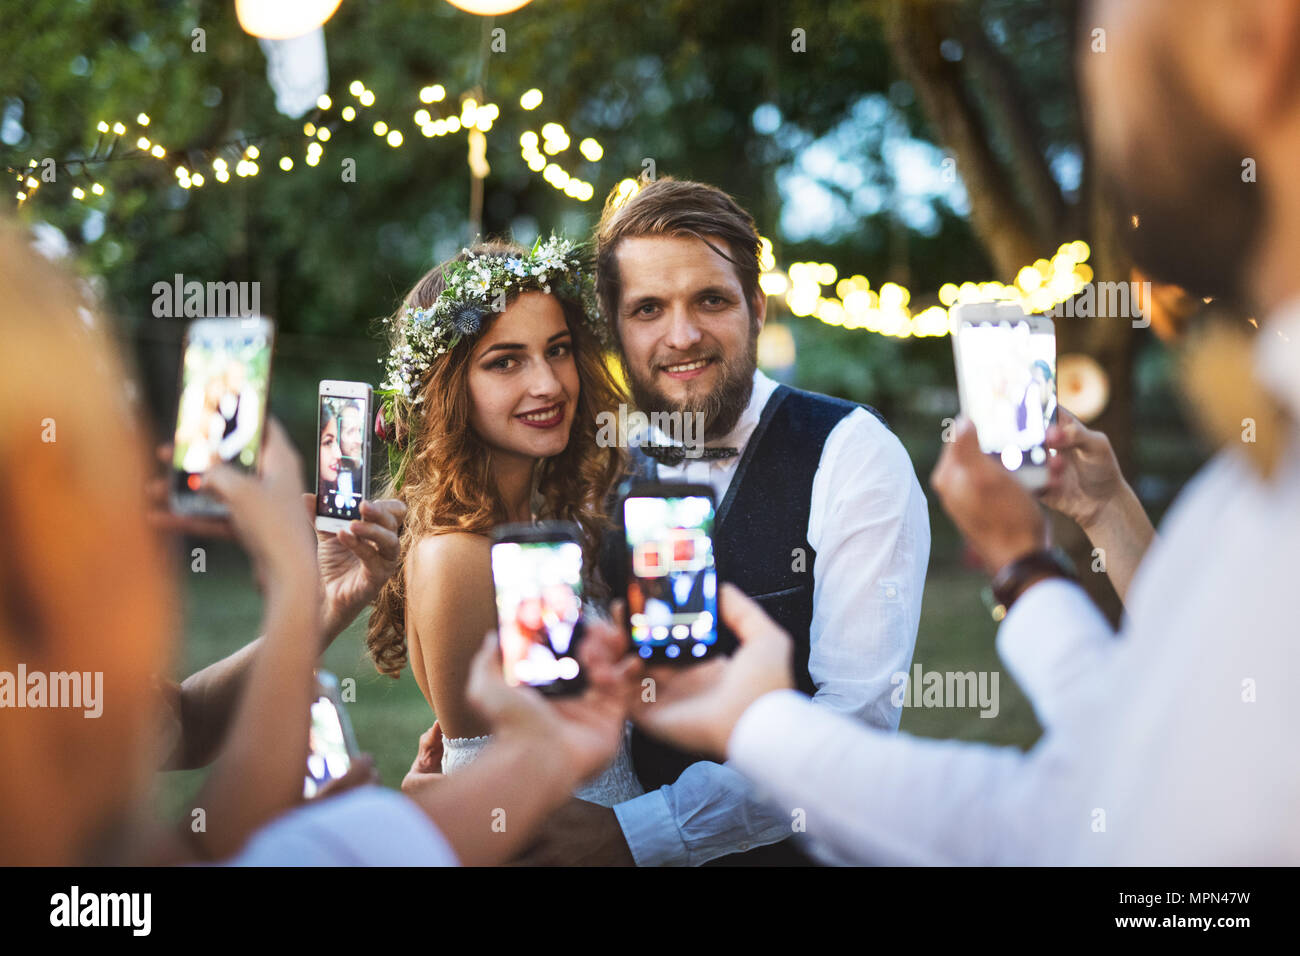 Guests with smartphones taking photo of bride and groom at wedding reception outside. - Stock Image